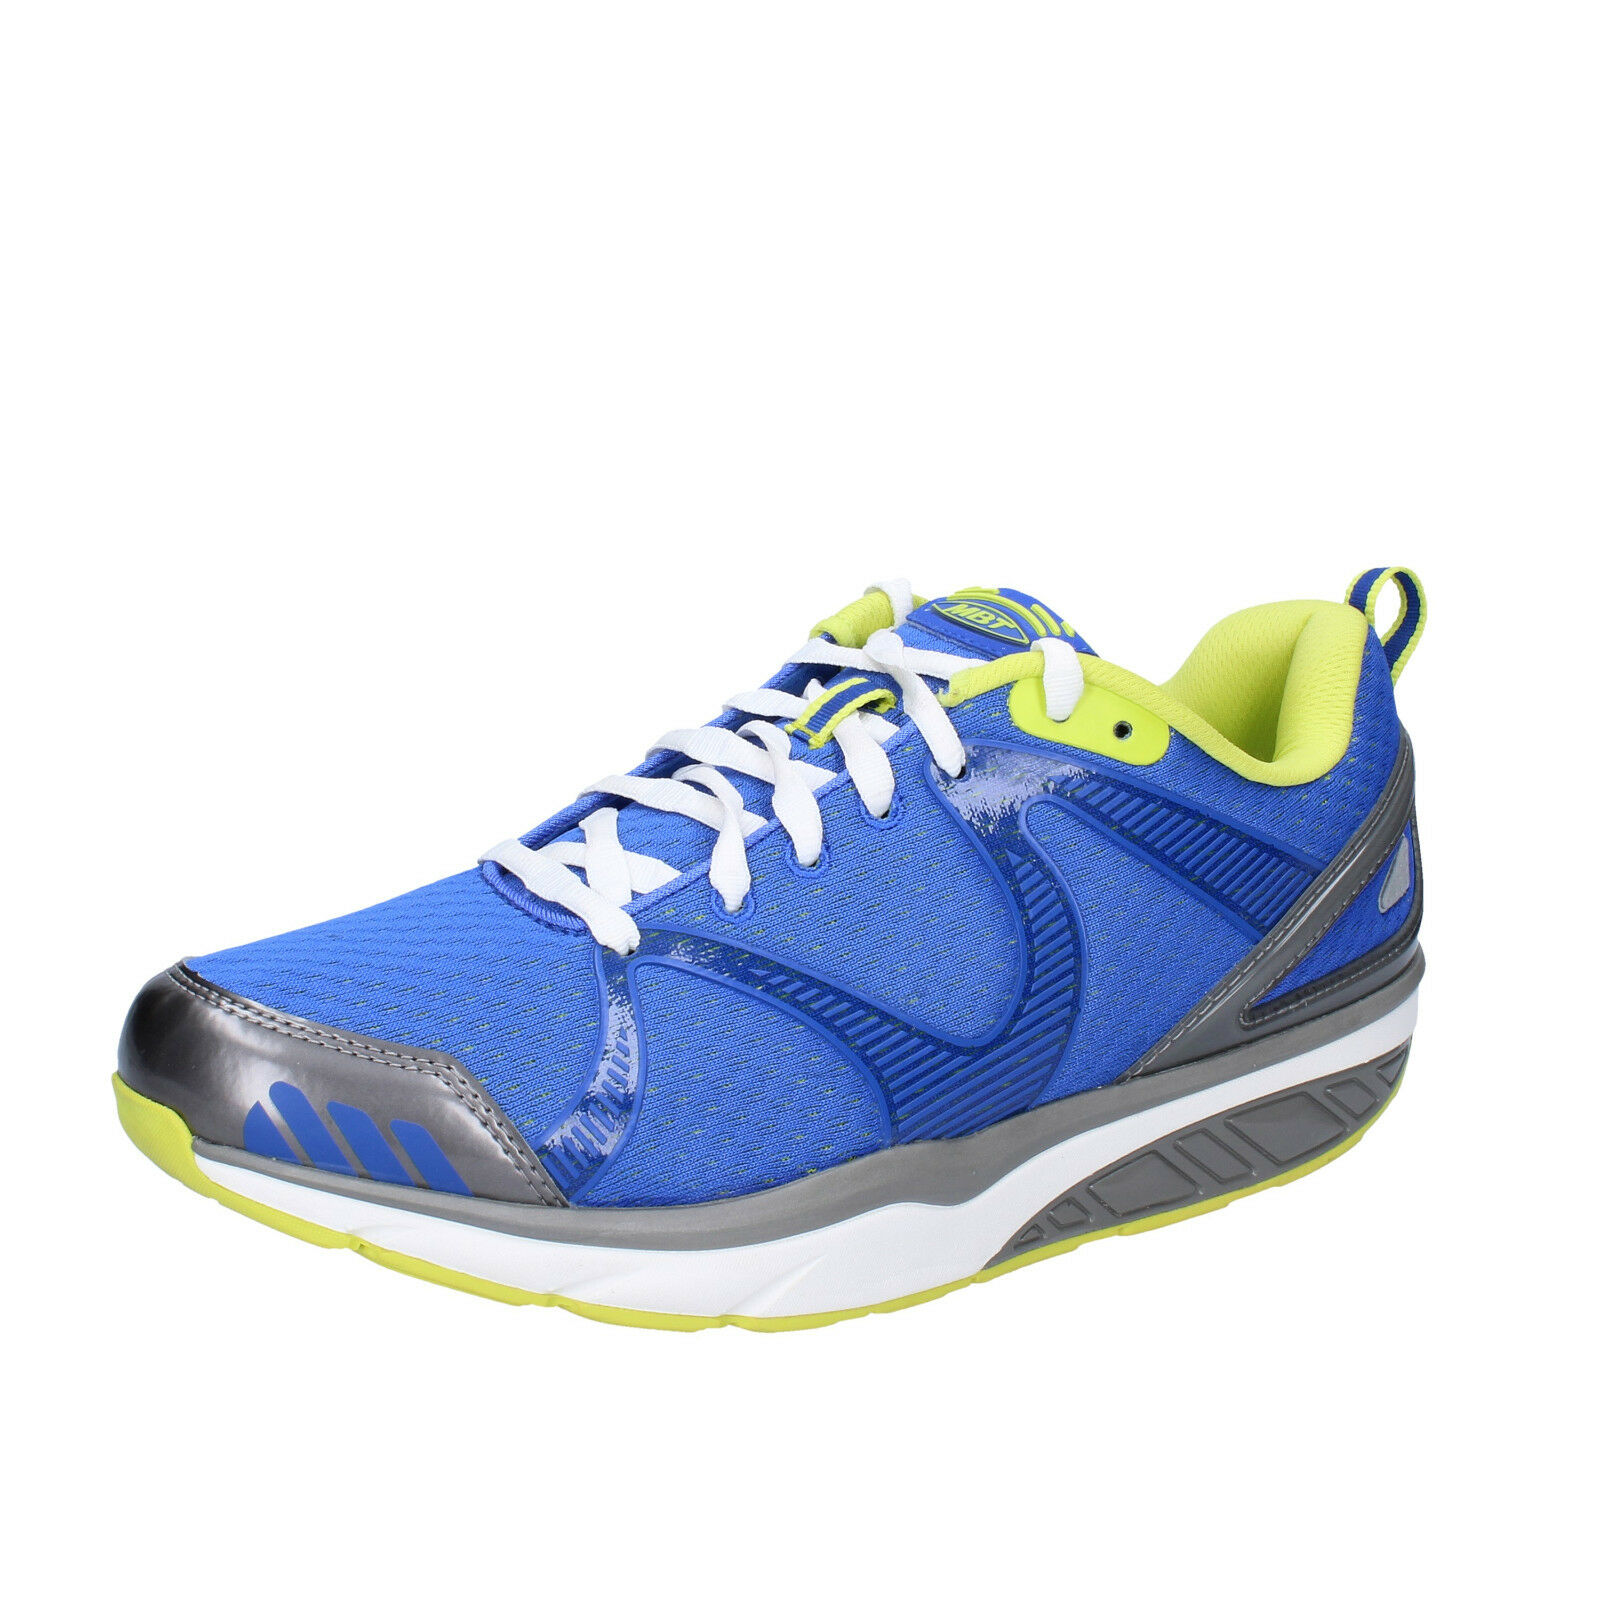 men's shoes MBT 6 / 6,5 () sneakers blue textile dynamic BT15-40